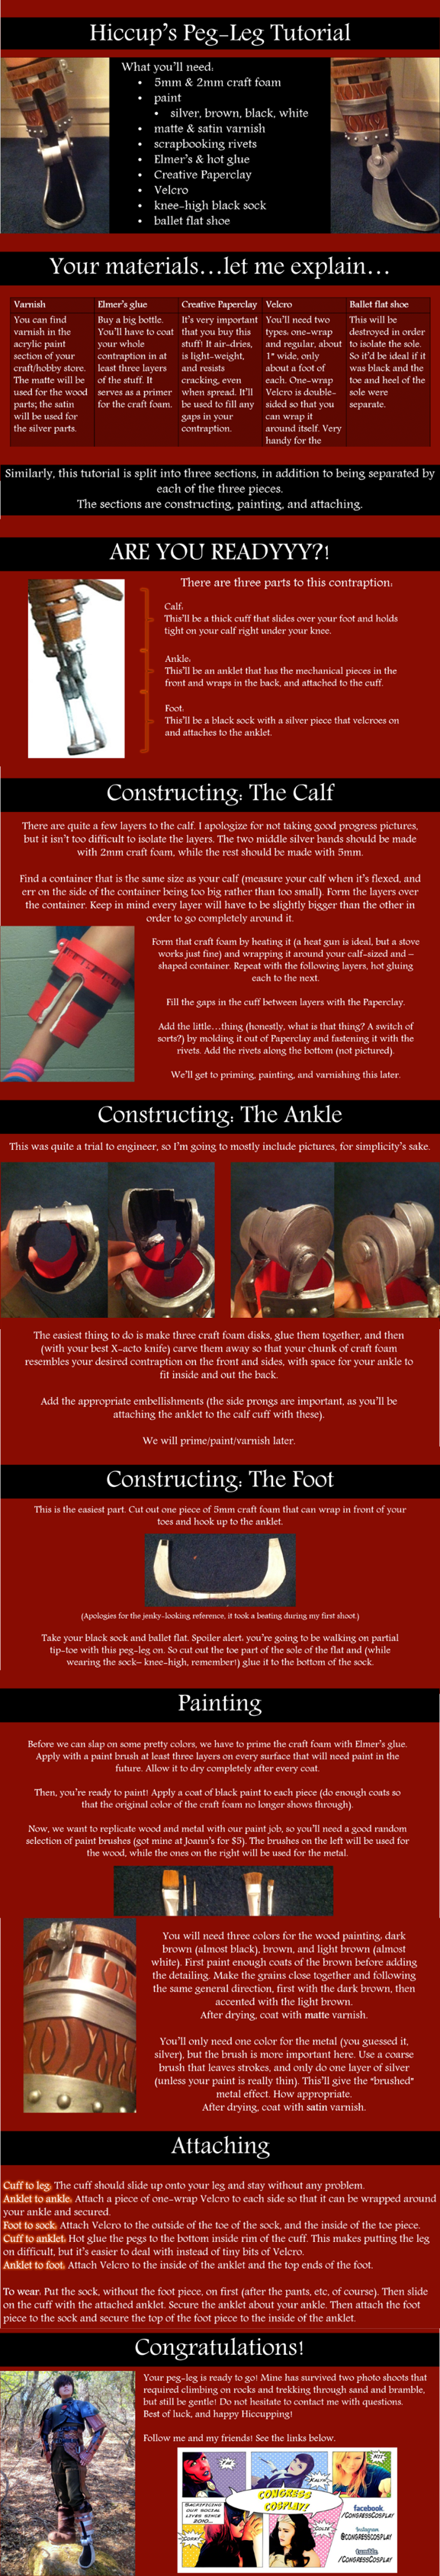 Hiccup's Peg-Leg/False Foot Cosplay Tutorial by oOPrincessLinkOo